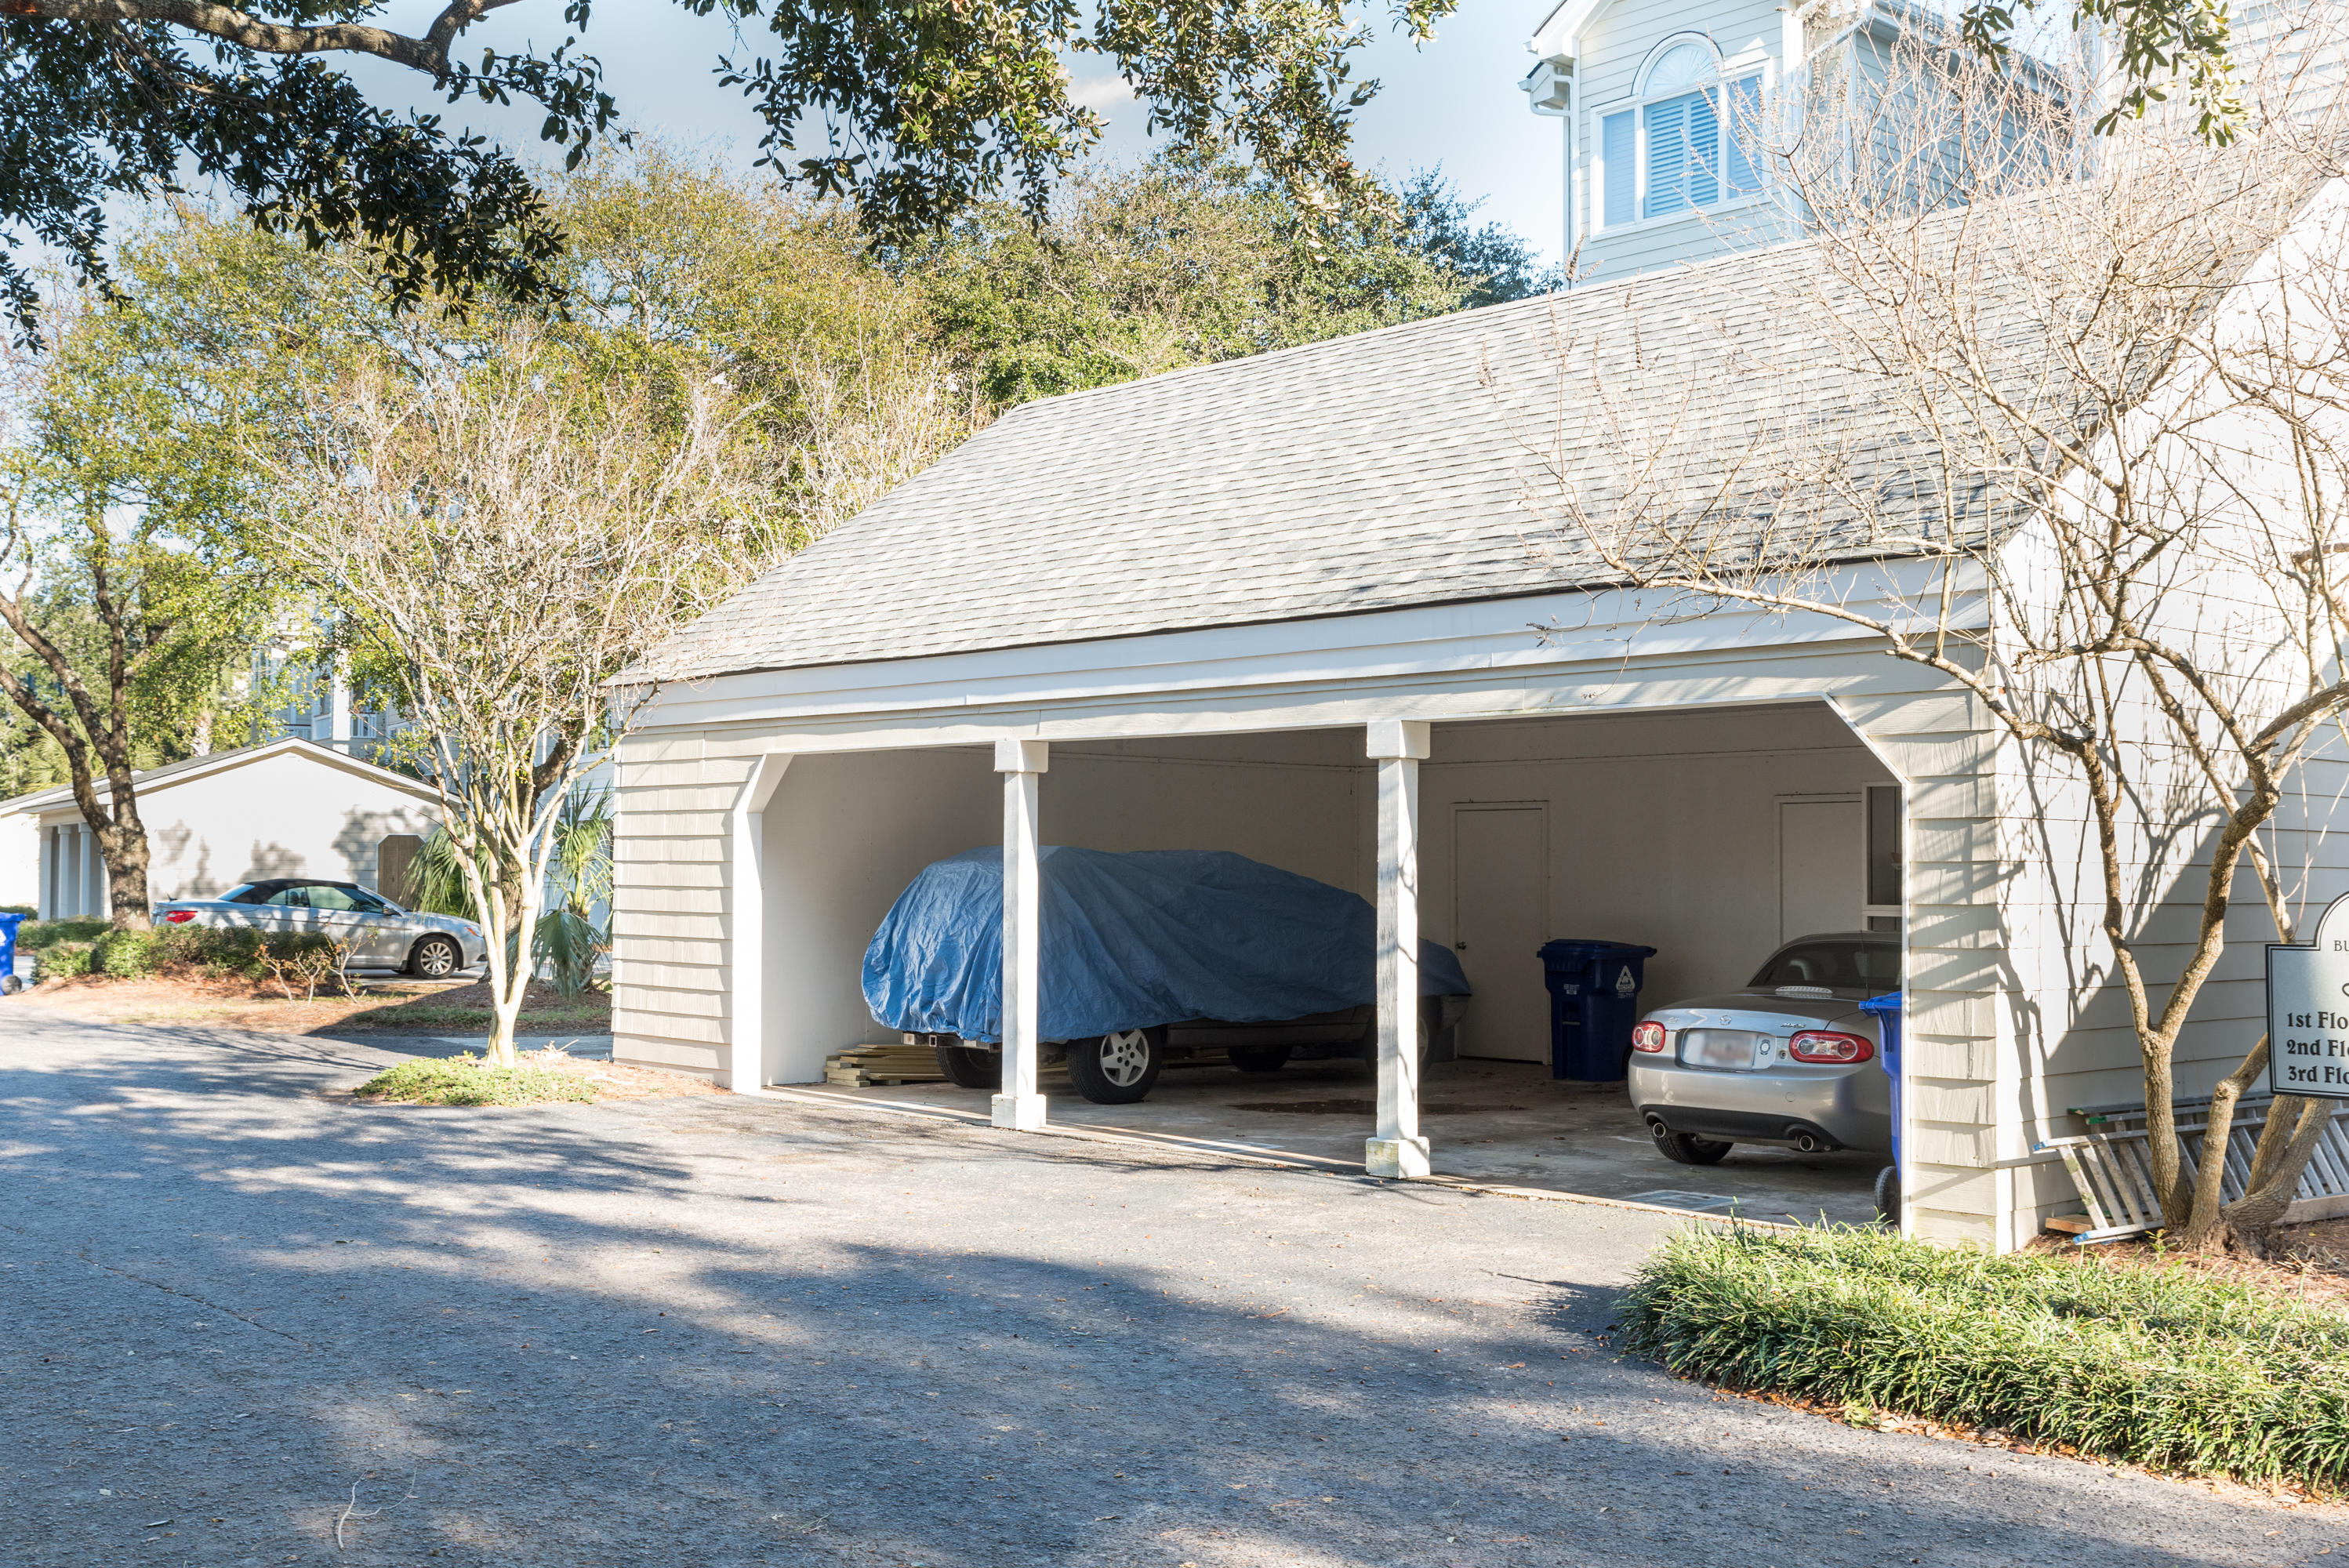 Simmons Pointe Homes For Sale - 1551 Simmons, Mount Pleasant, SC - 0